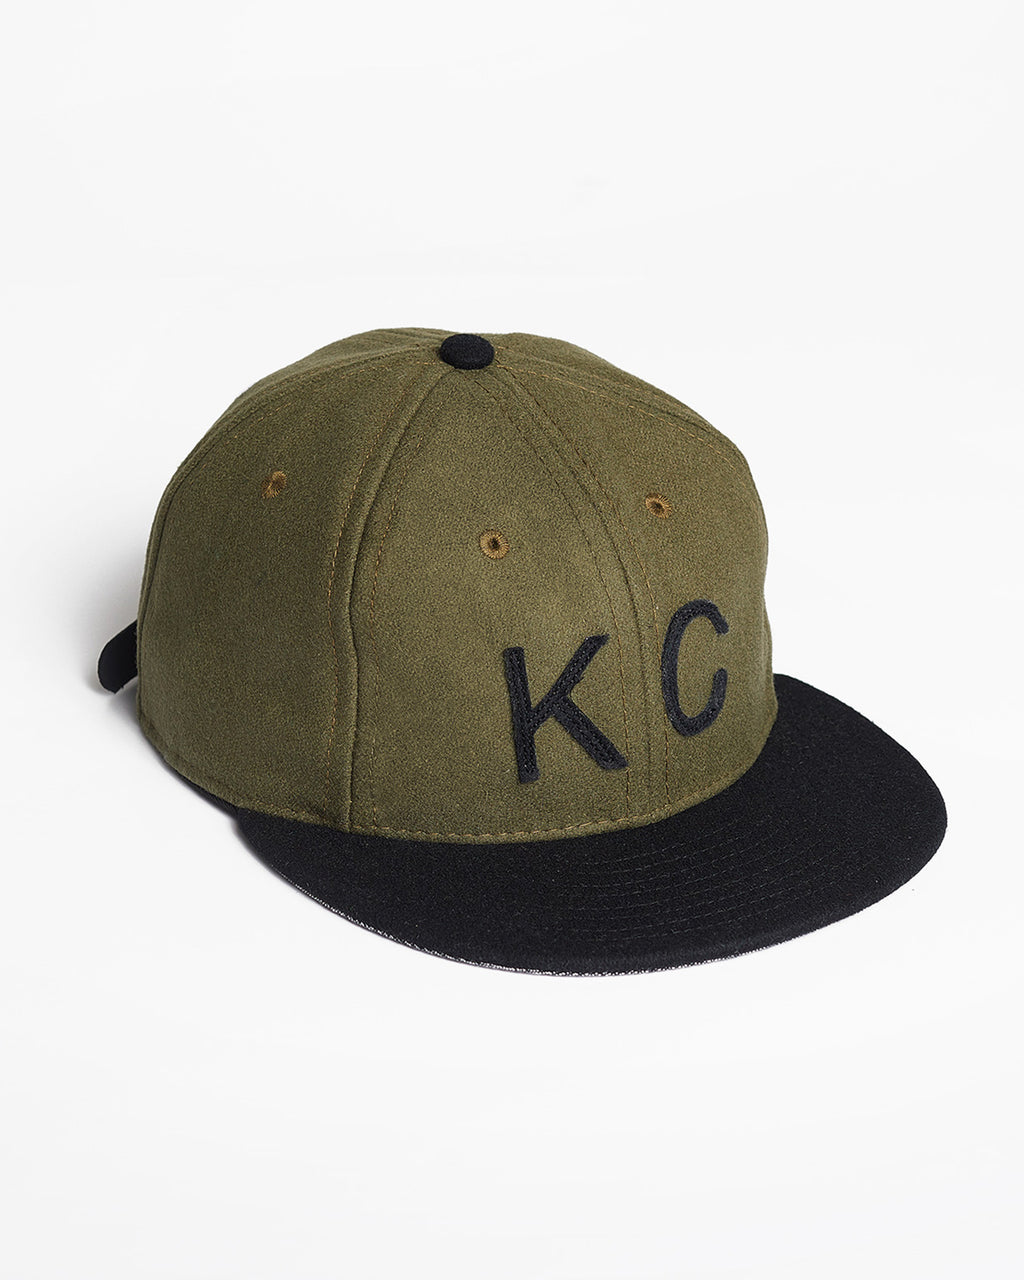 The KC Hat Strapback in Olive/Black